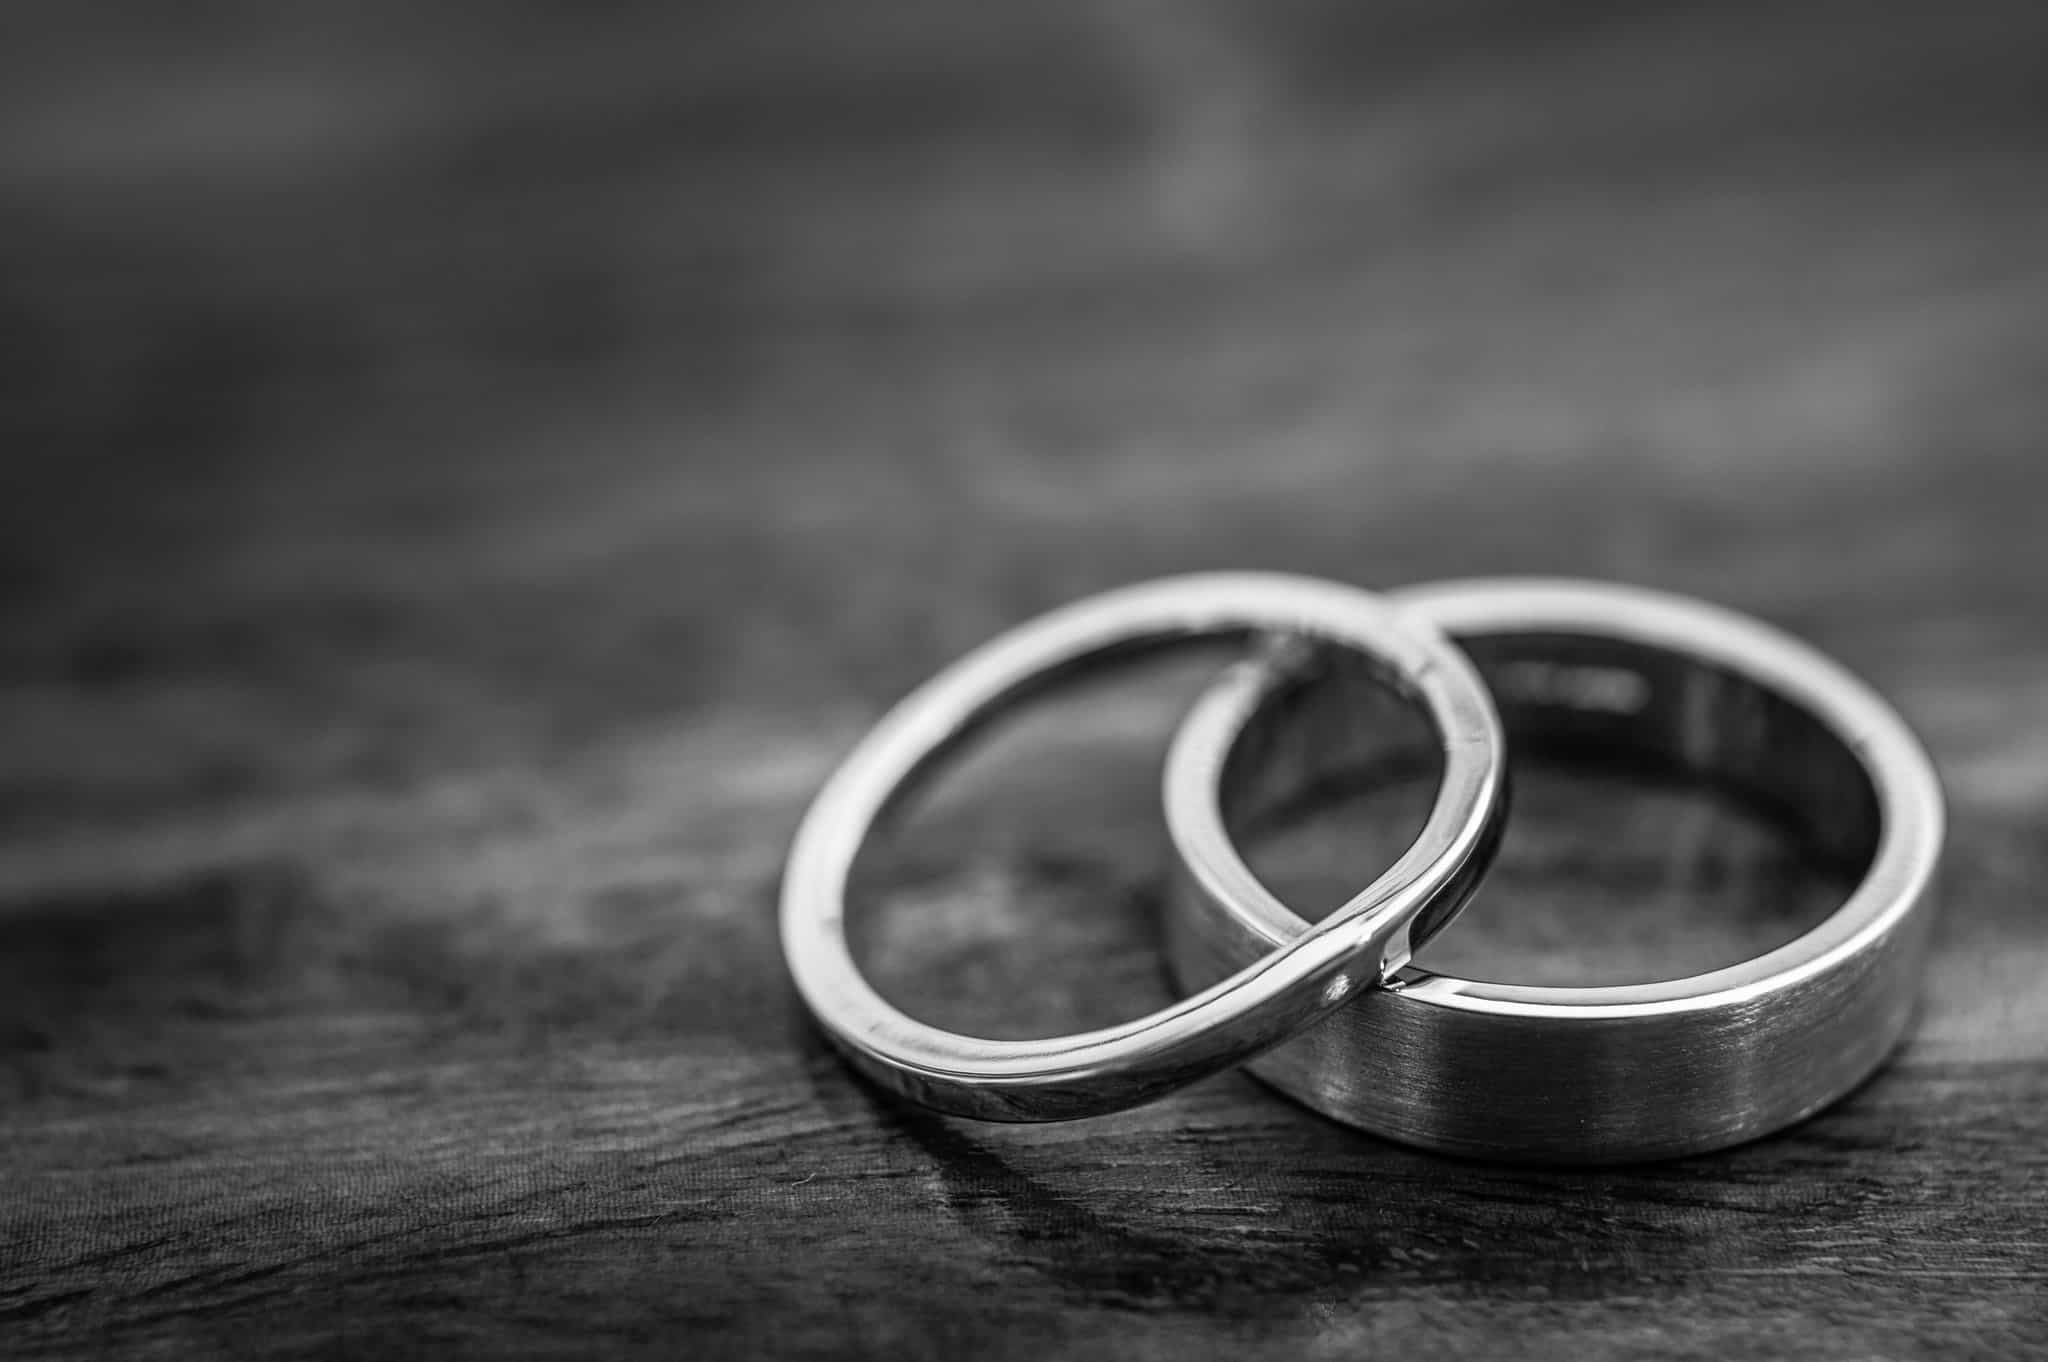 Palladium Wedding Rings On A Wooden Surface